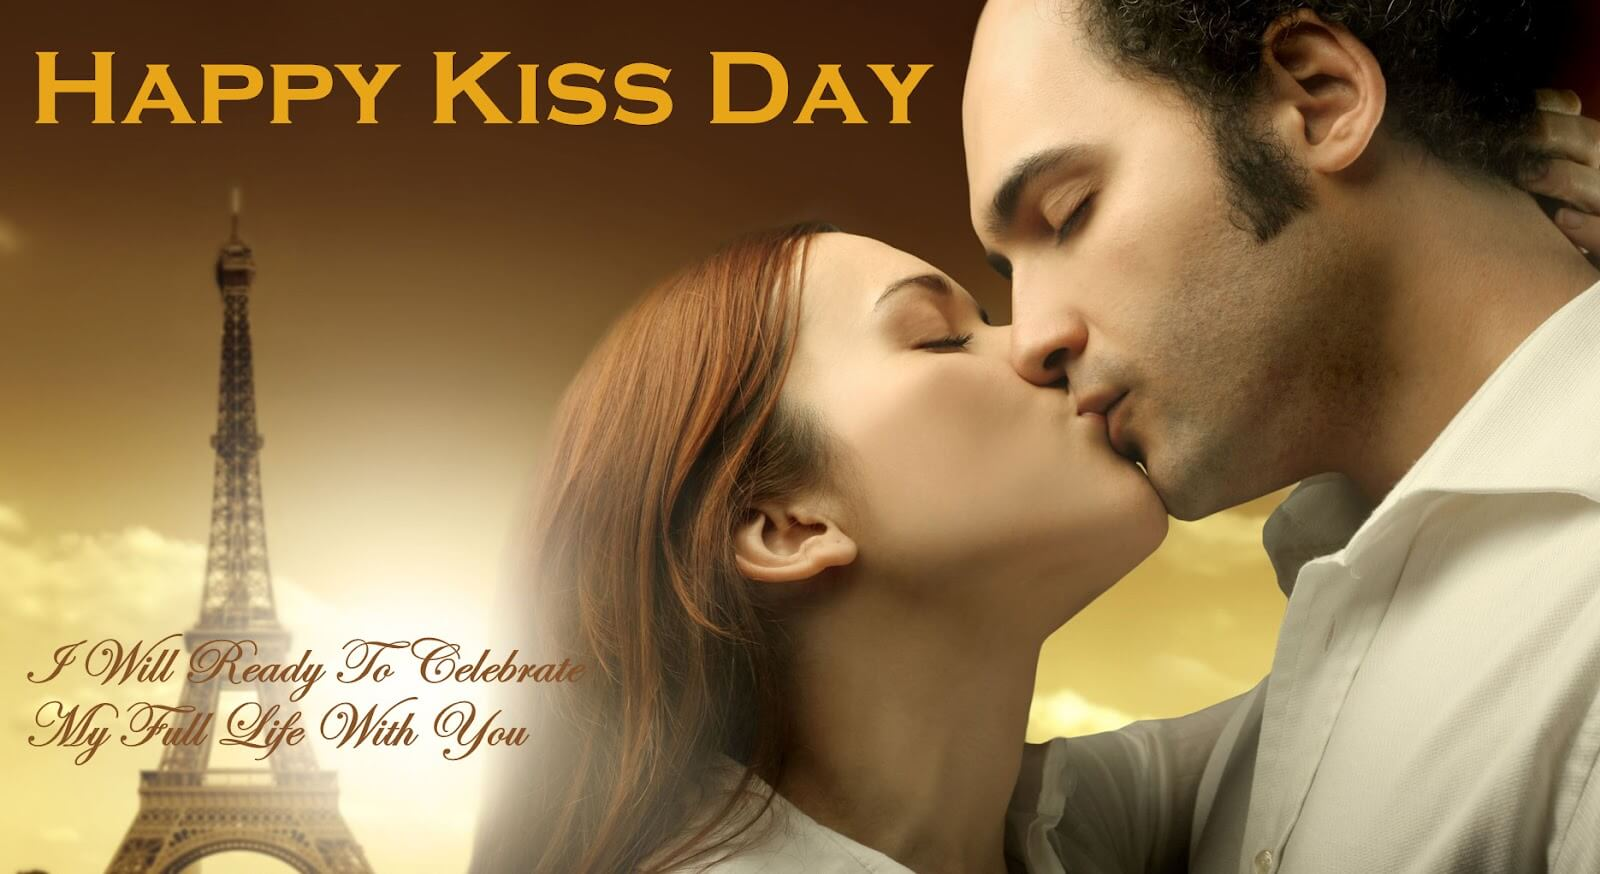 Happy Kiss Day Images HD Wallpapers Animated GIFs